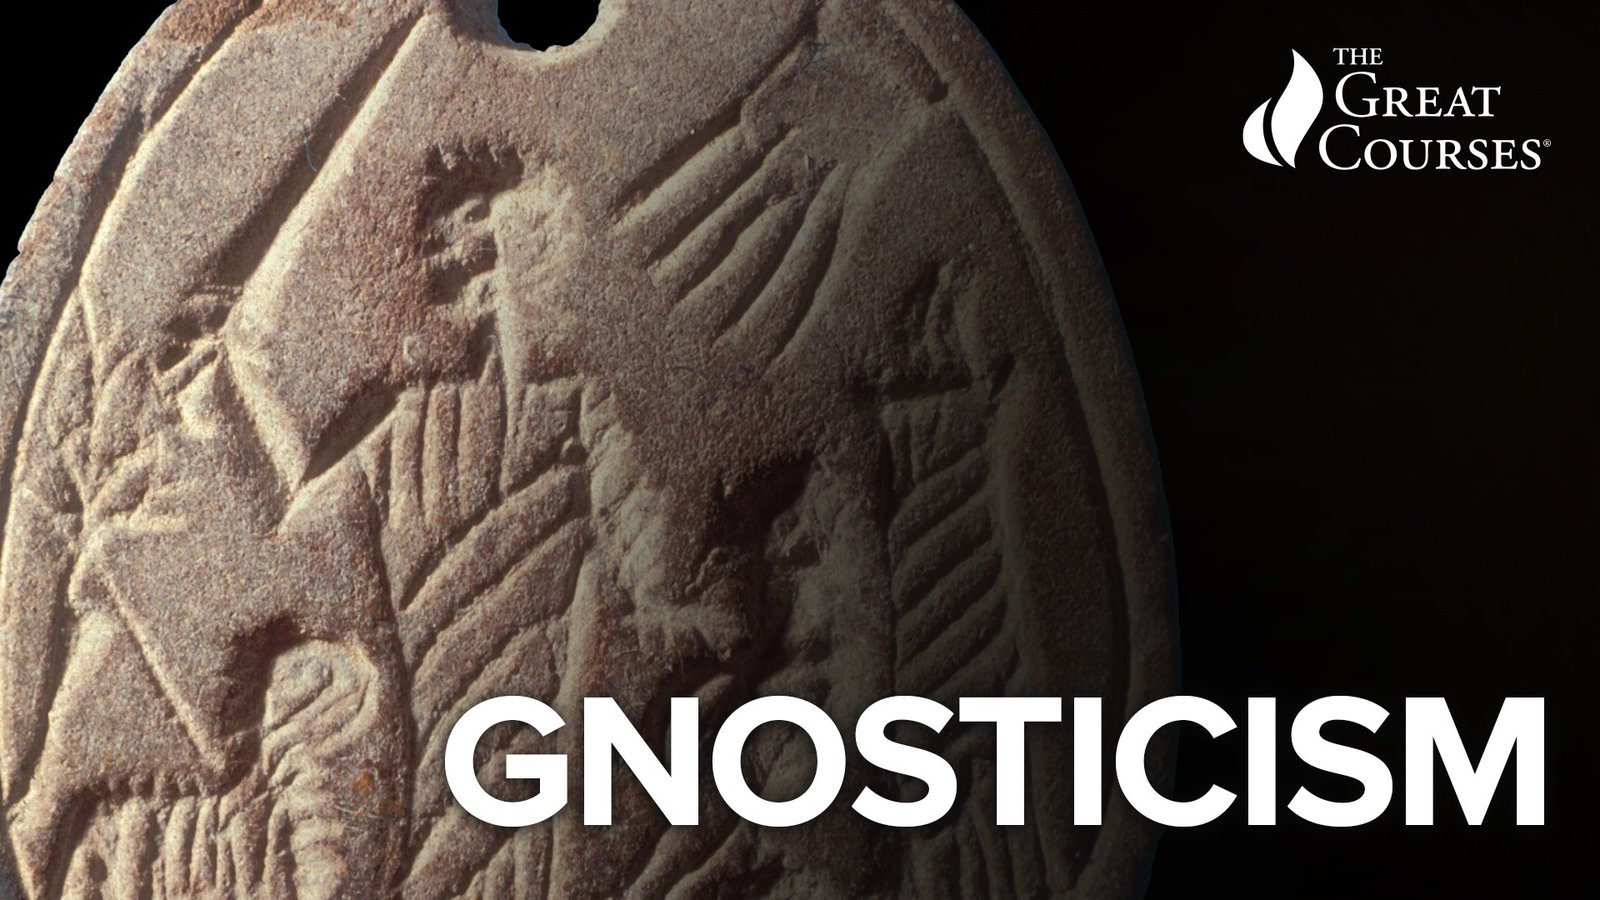 Gnosticism - From Nag Hammadi to the Gospel of Judas